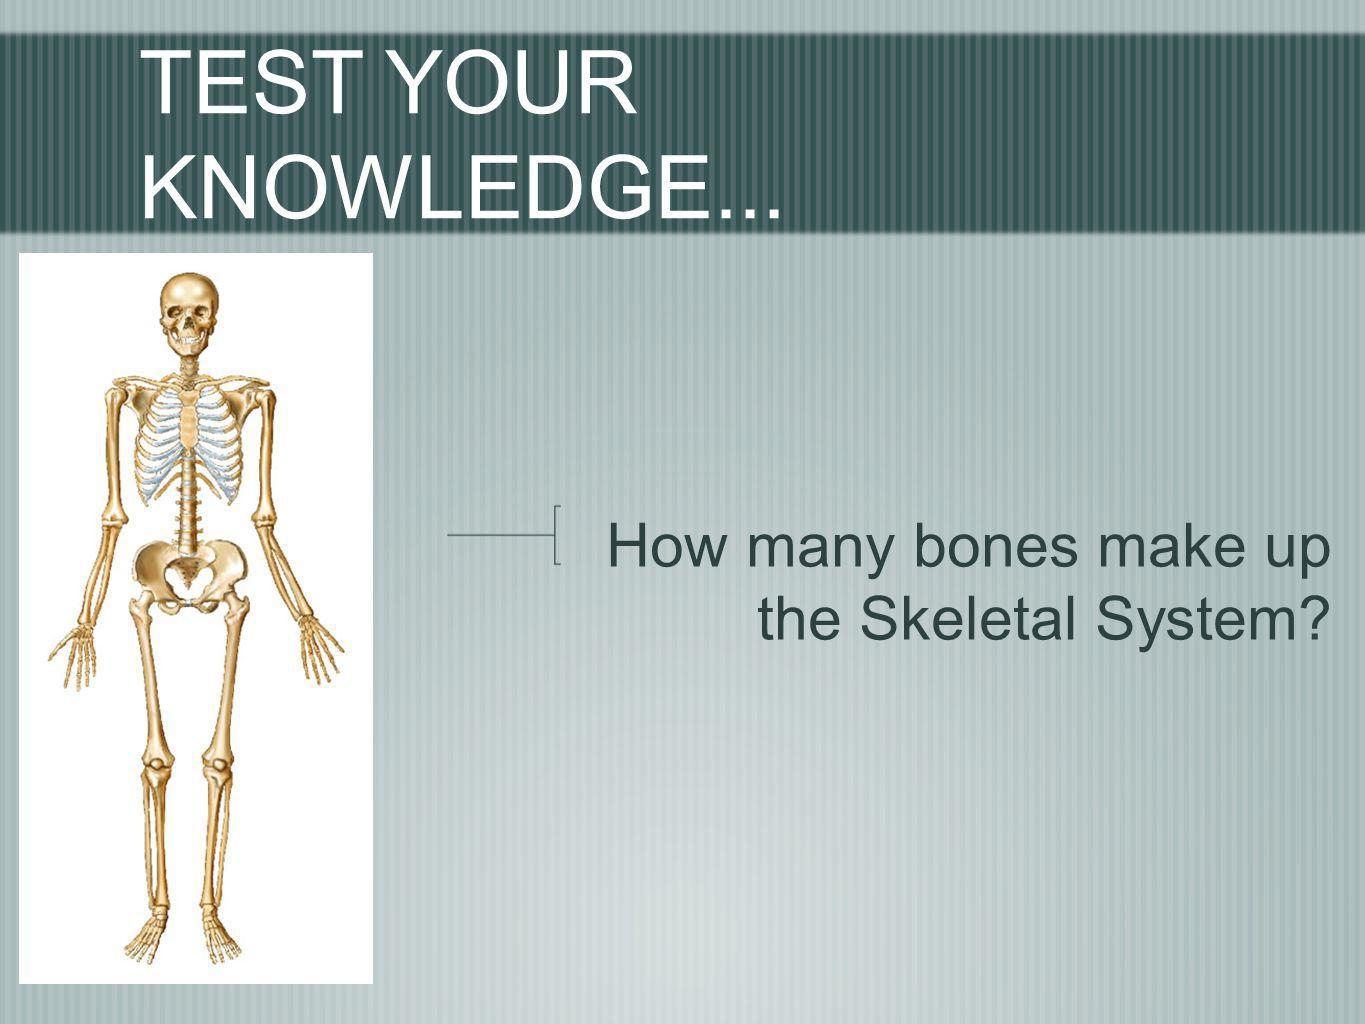 TEST YOUR KNOWLEDGE... How many bones make up the Skeletal System